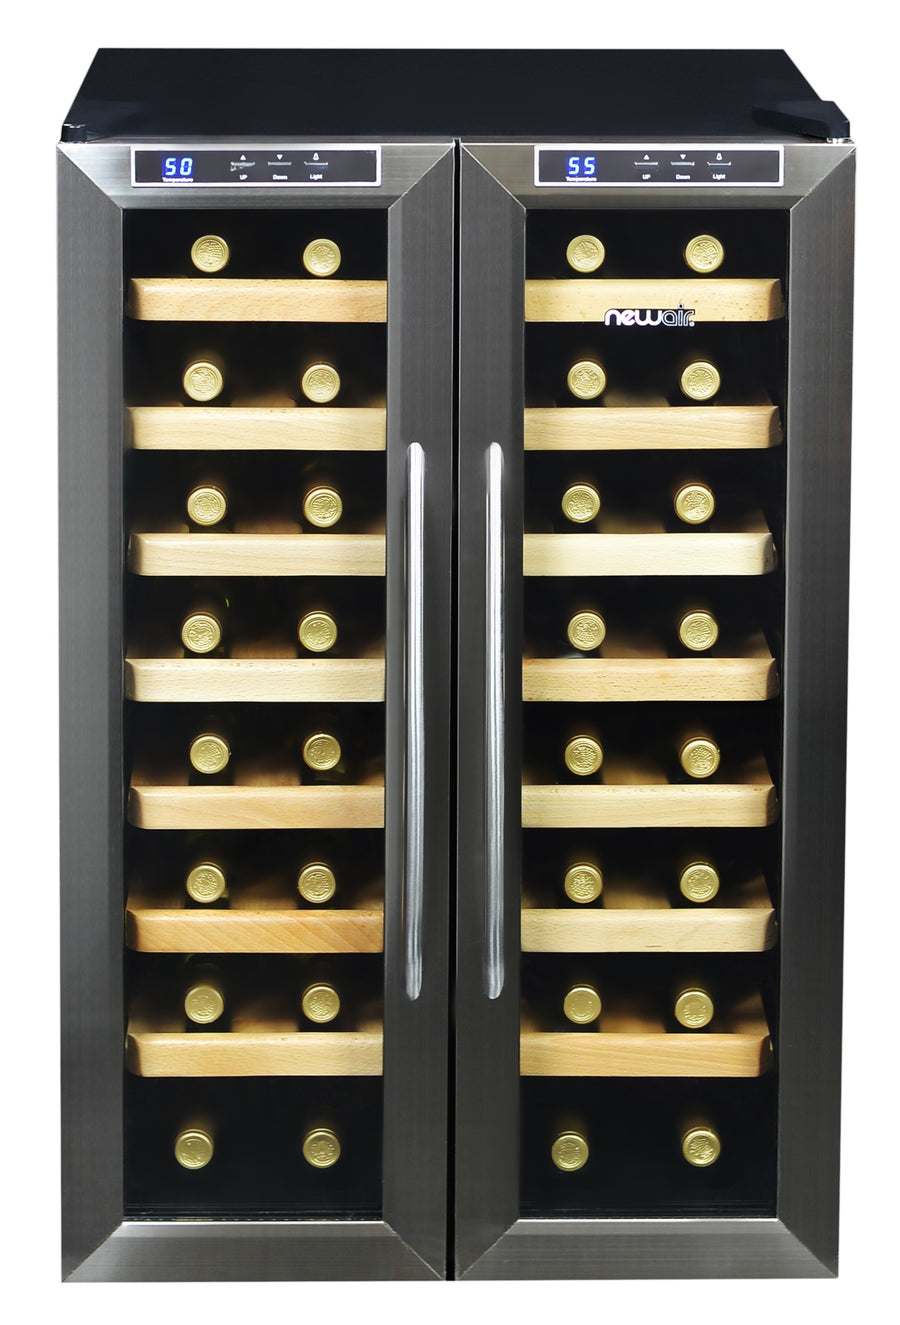 ... NewAir AW-321ED Collectoru0027s 32 Bottle Dual-Zone Wine Cooler Stainless Steel ...  sc 1 st  NewAir & NewAir AW-321ED Collectoru0027s 32 Bottle Dual-Zone Wine Cooler Stainless